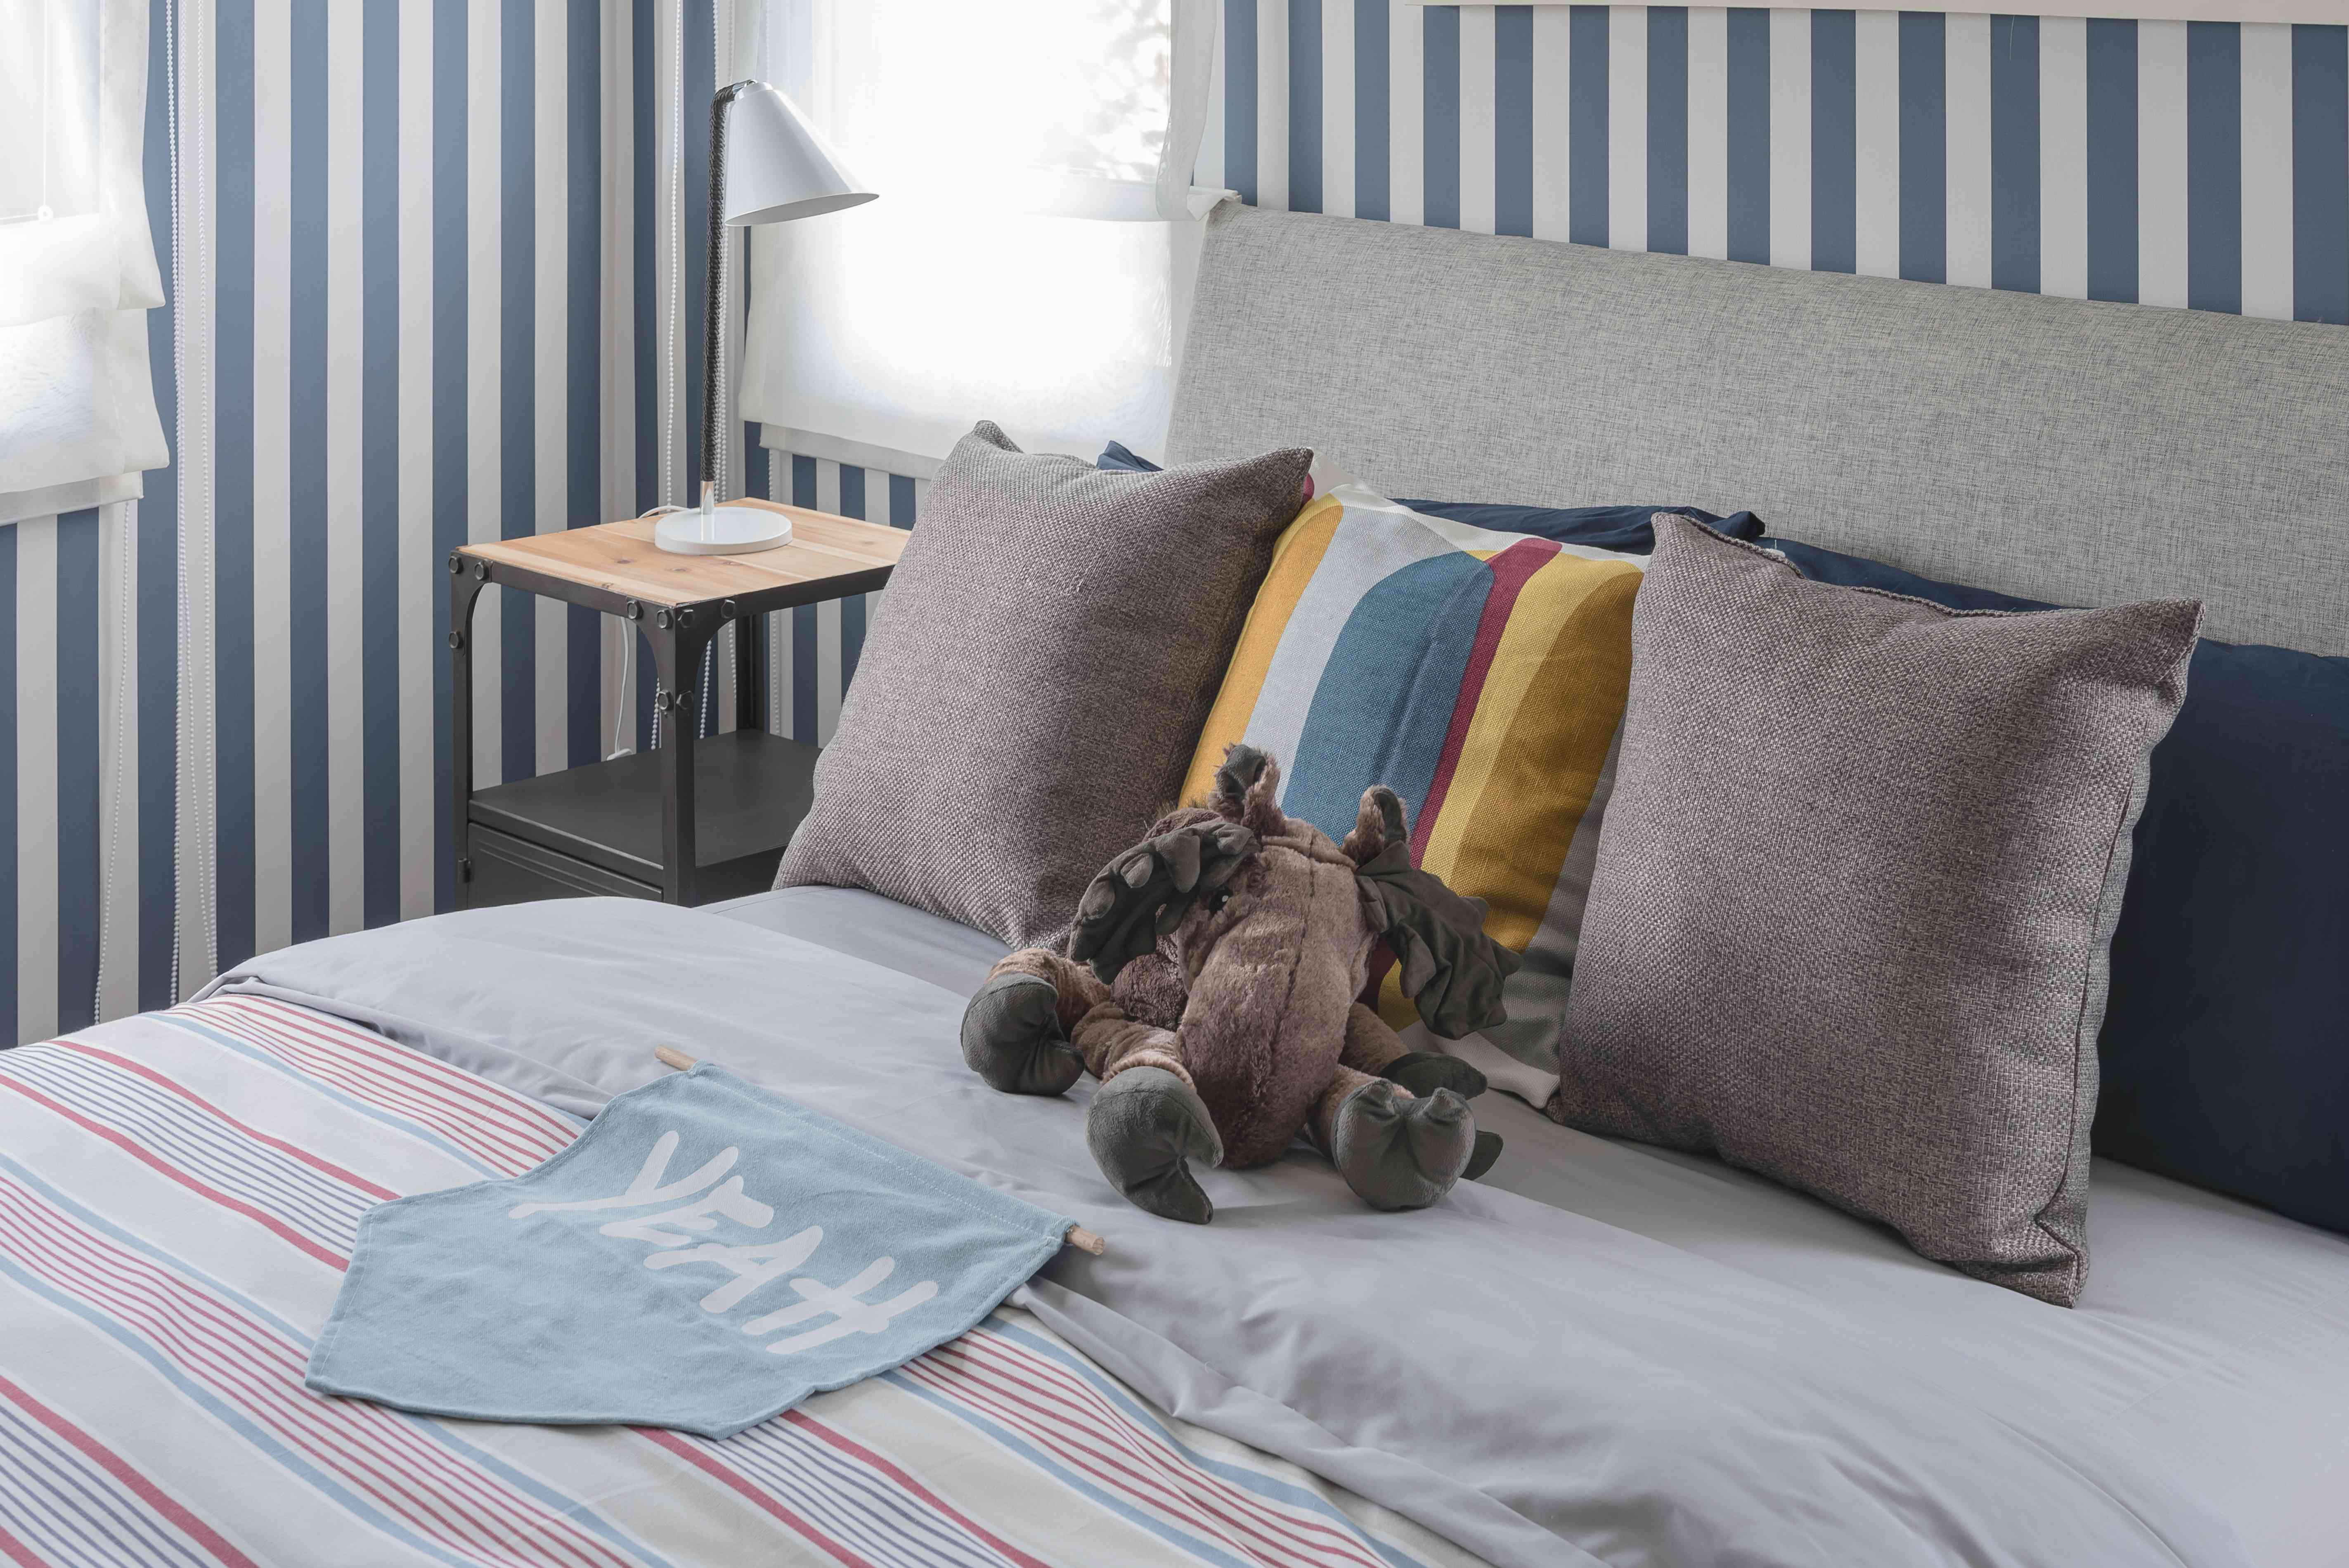 kid's bedroom with doll on bed